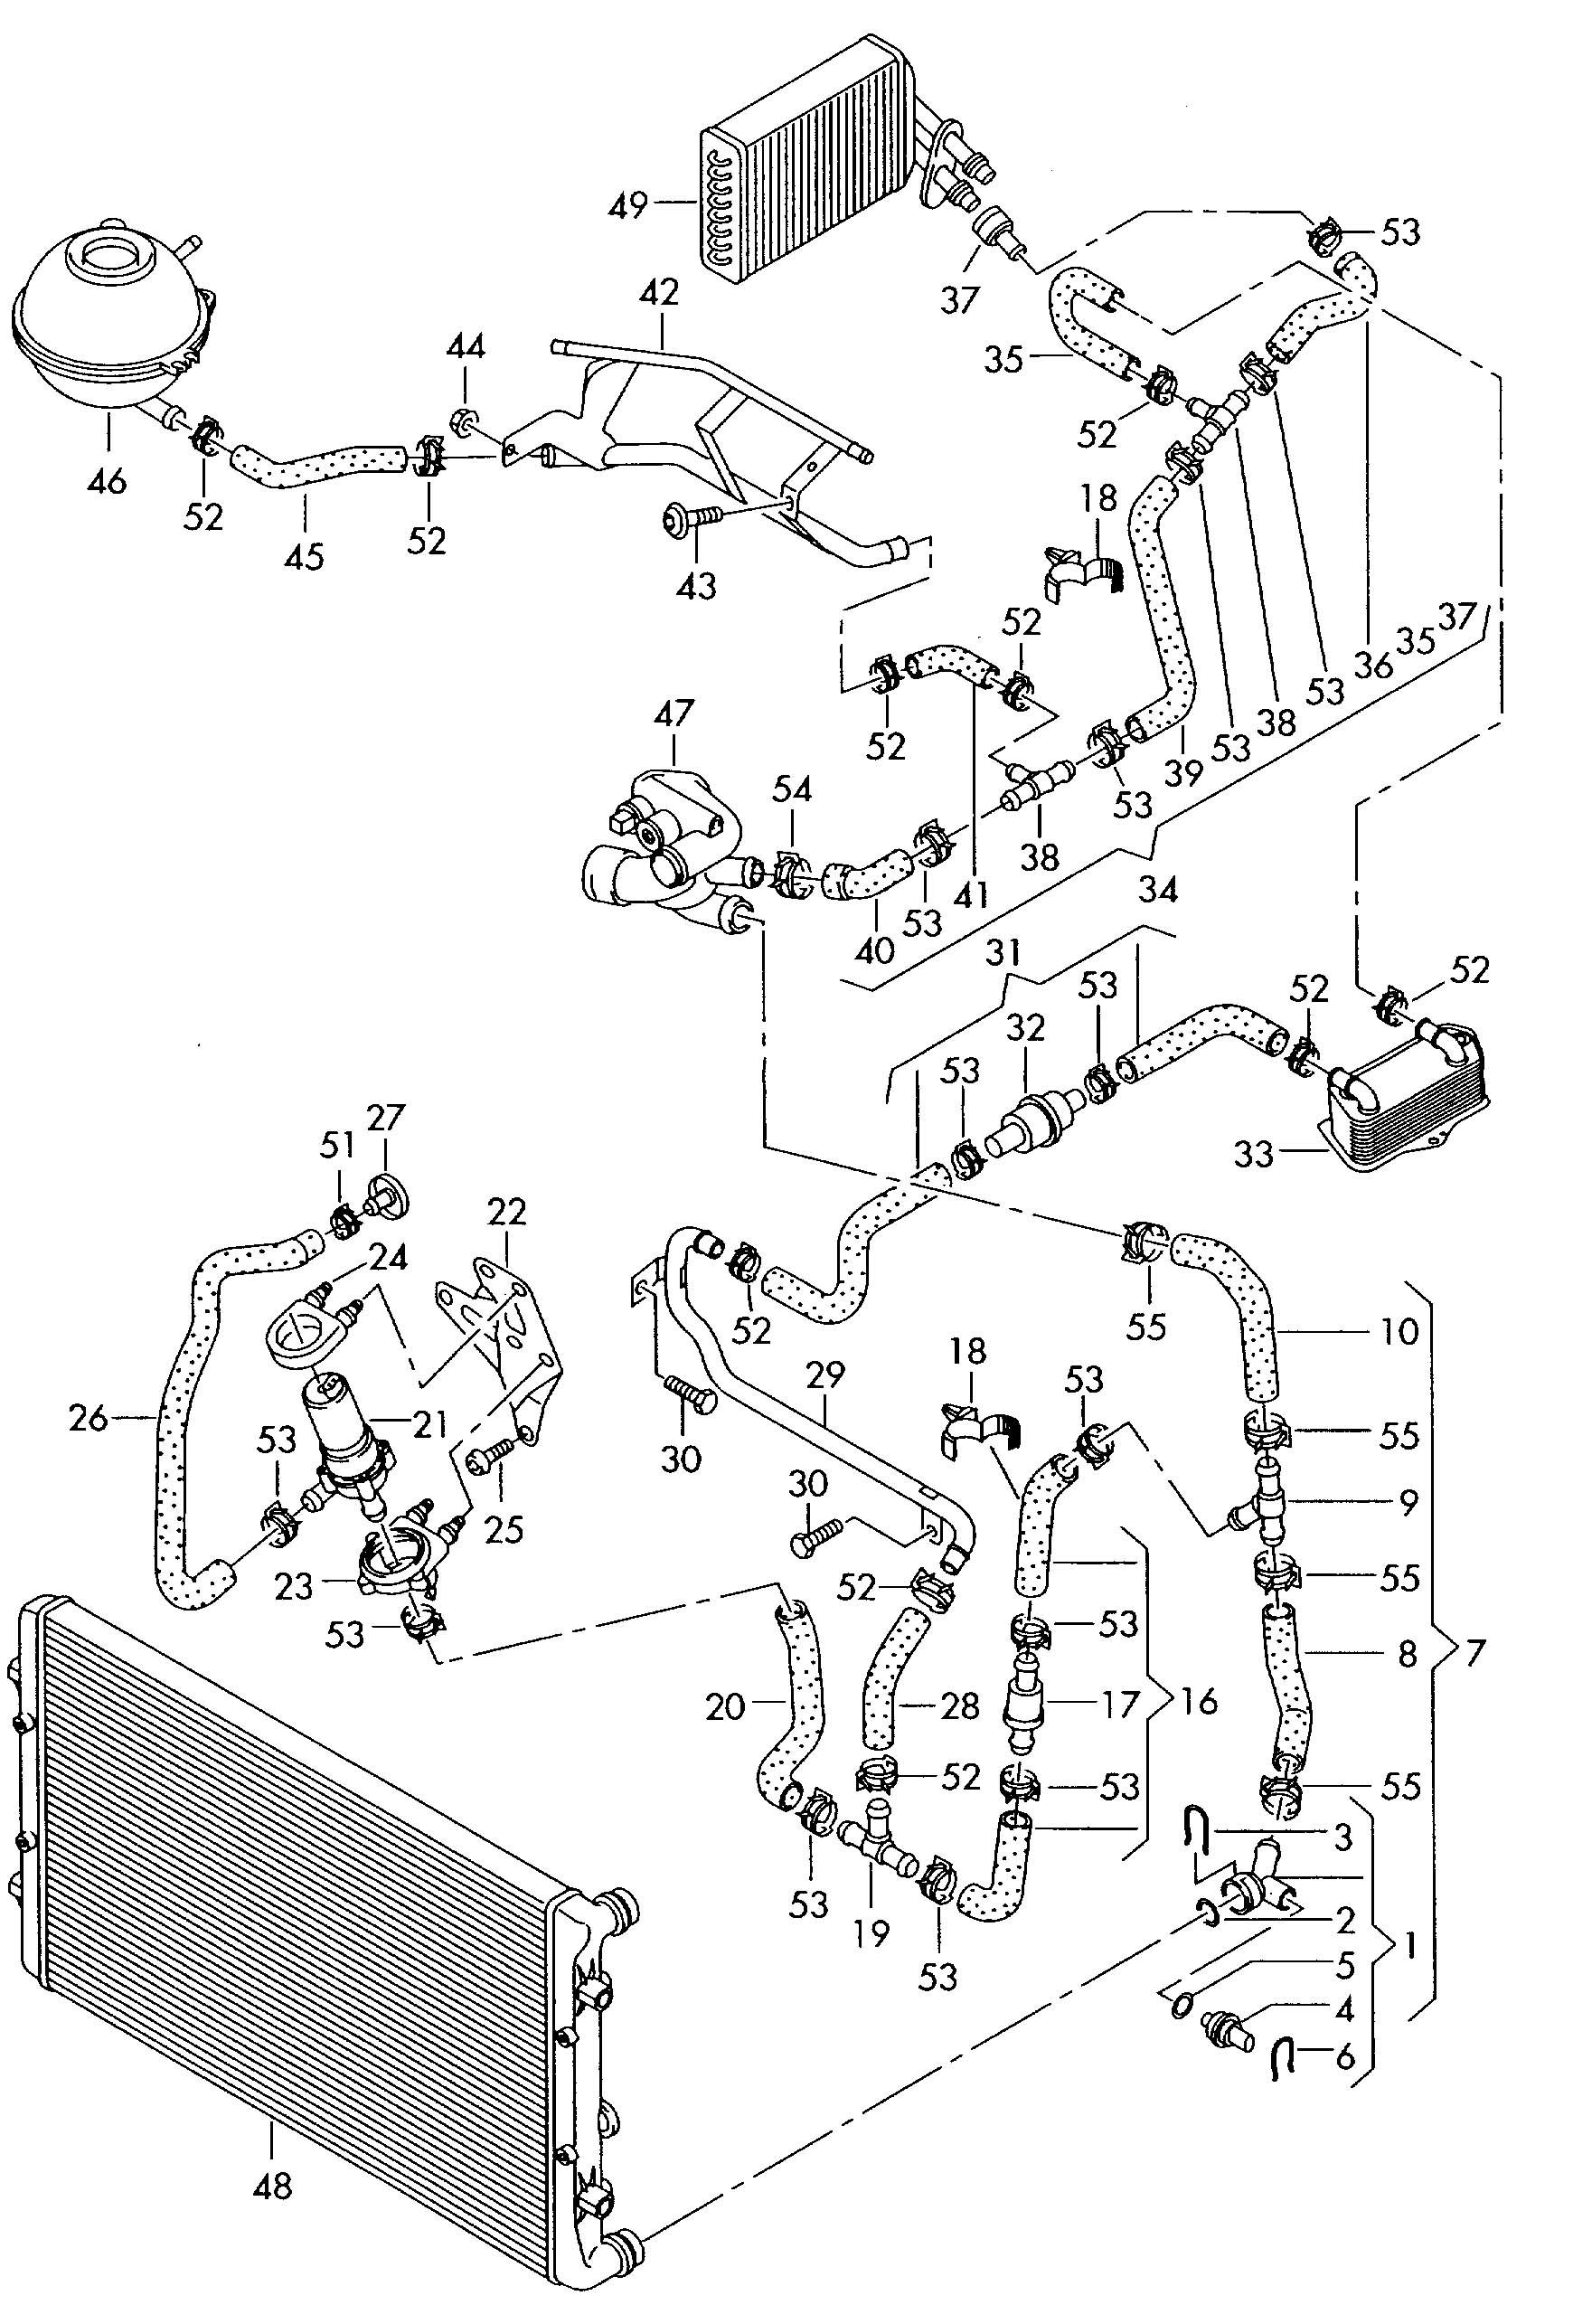 728643f5b47d7e86c8e506b83ab526d6  Pat Wiring Diagram on honda motorcycle repair diagrams, motor diagrams, hvac diagrams, series and parallel circuits diagrams, friendship bracelet diagrams, transformer diagrams, electronic circuit diagrams, lighting diagrams, pinout diagrams, sincgars radio configurations diagrams, smart car diagrams, engine diagrams, internet of things diagrams, led circuit diagrams, electrical diagrams, switch diagrams, gmc fuse box diagrams, battery diagrams, troubleshooting diagrams,